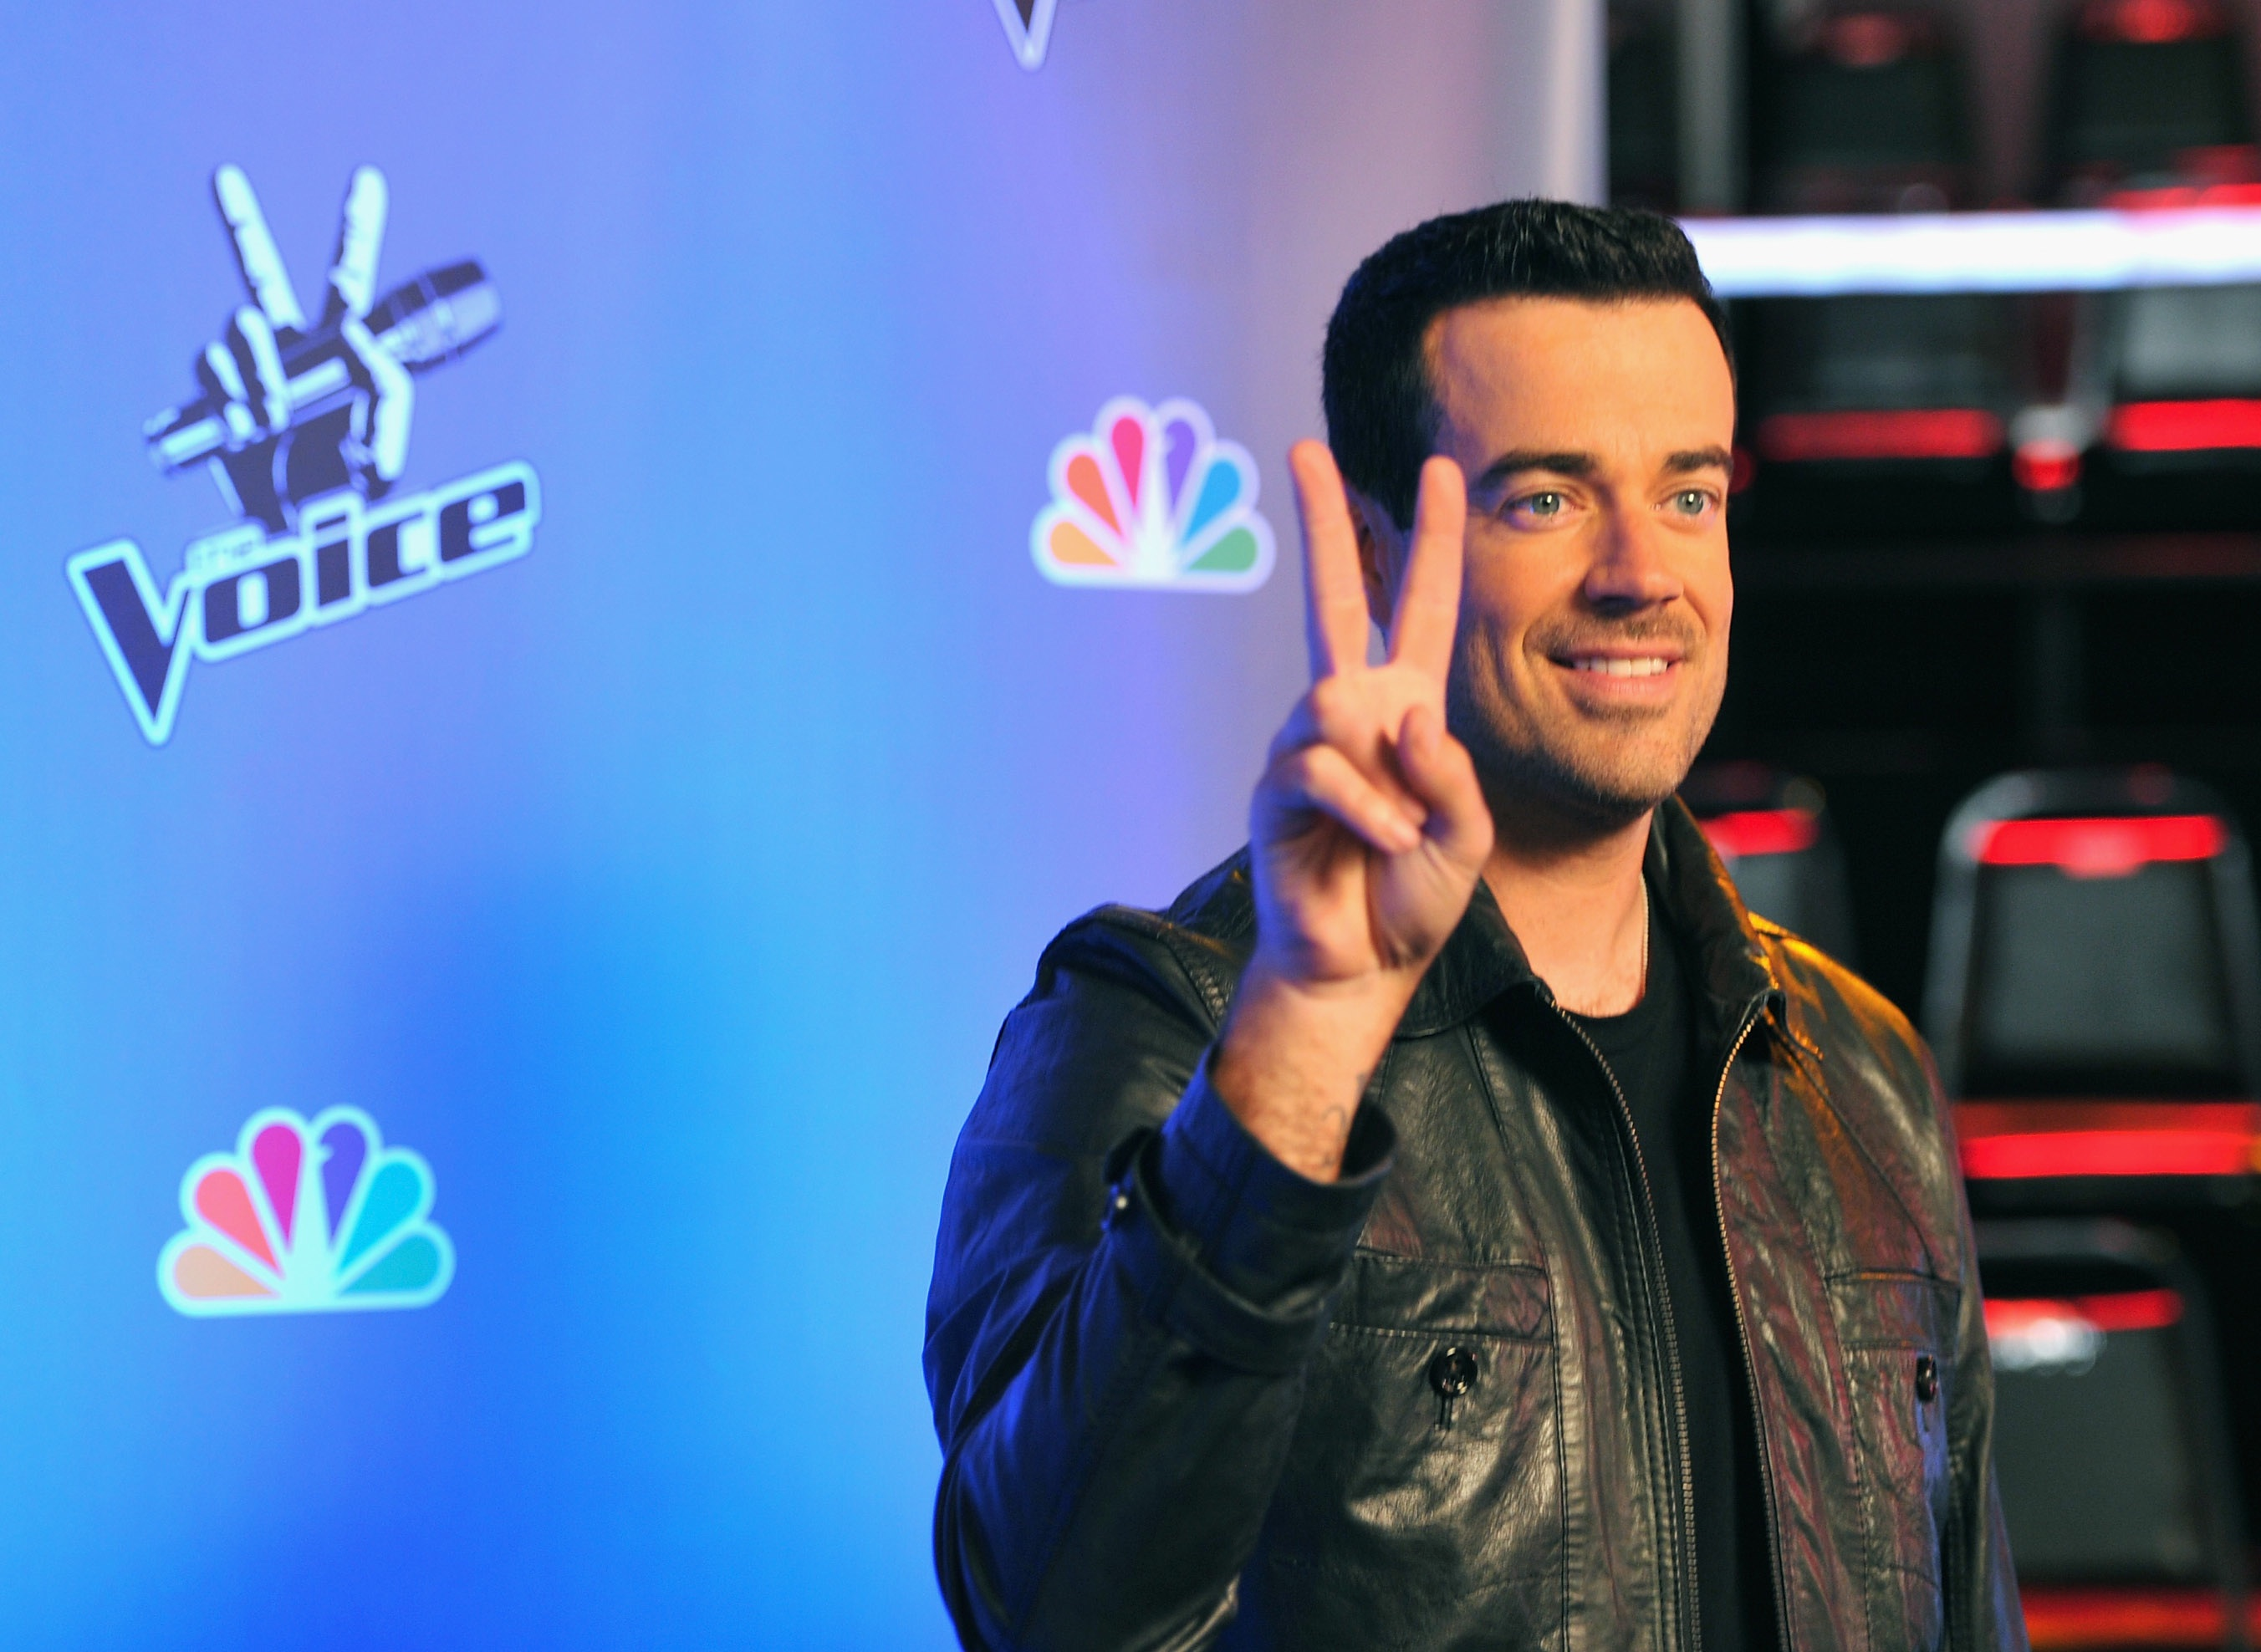 Click here to read Carson Daly Clinging to the Spotlight with Strange Gay Jokes